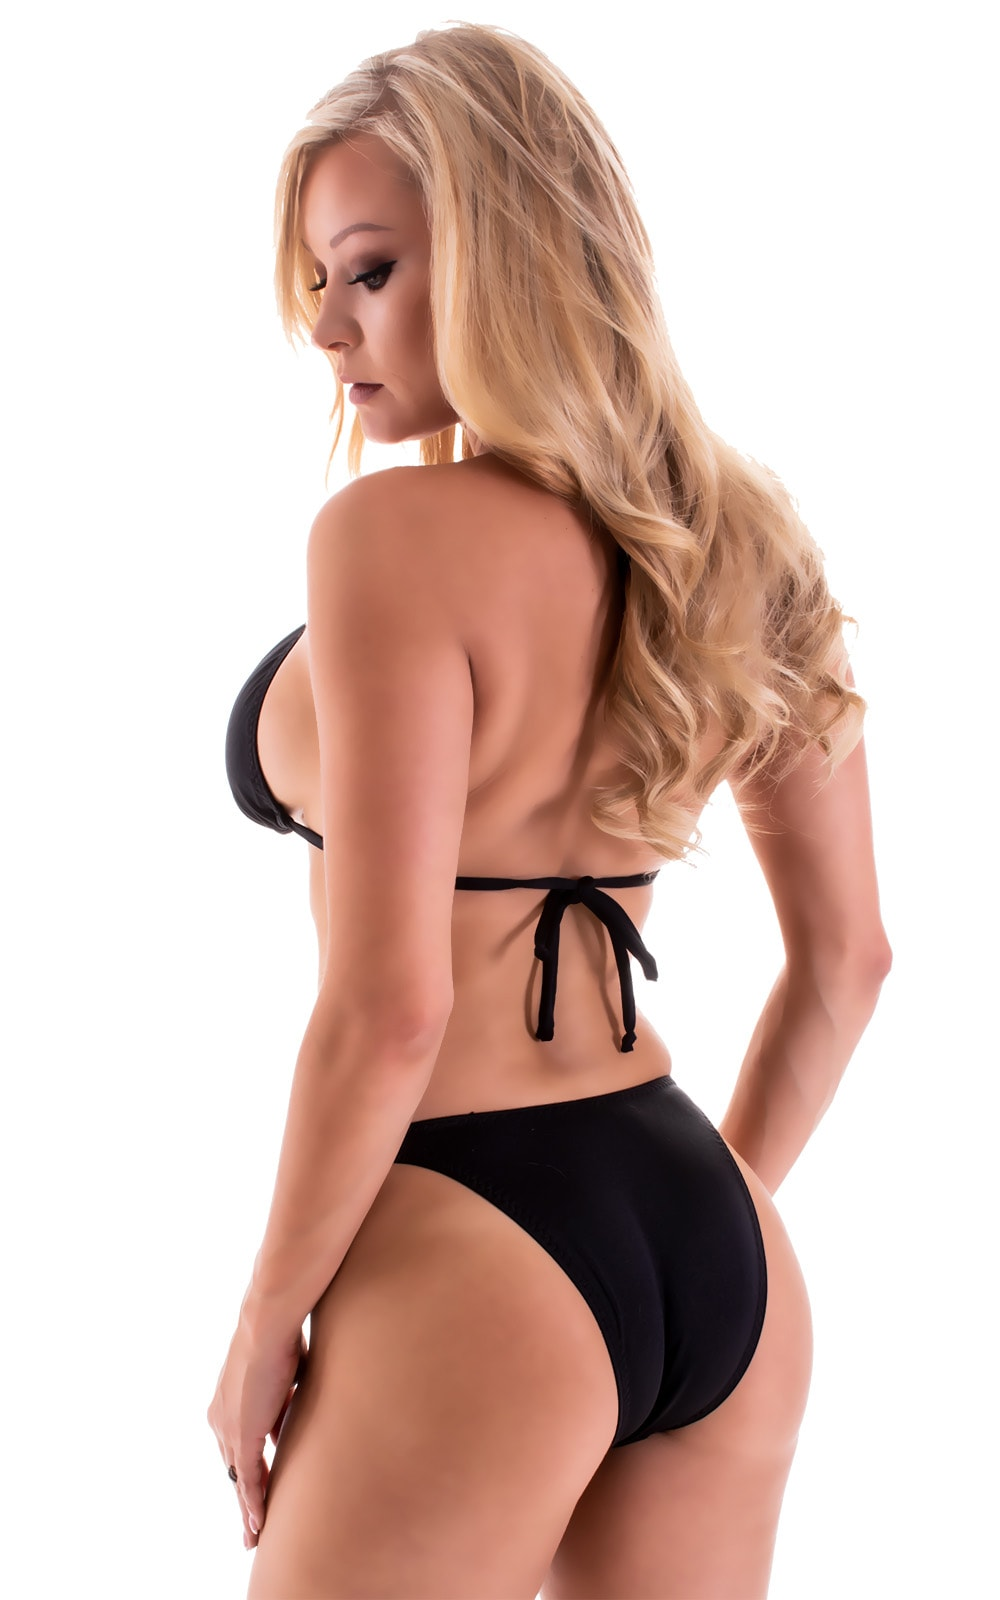 Classic Triangle Swimsuit Top in Black tricot-nylon-lycra 5